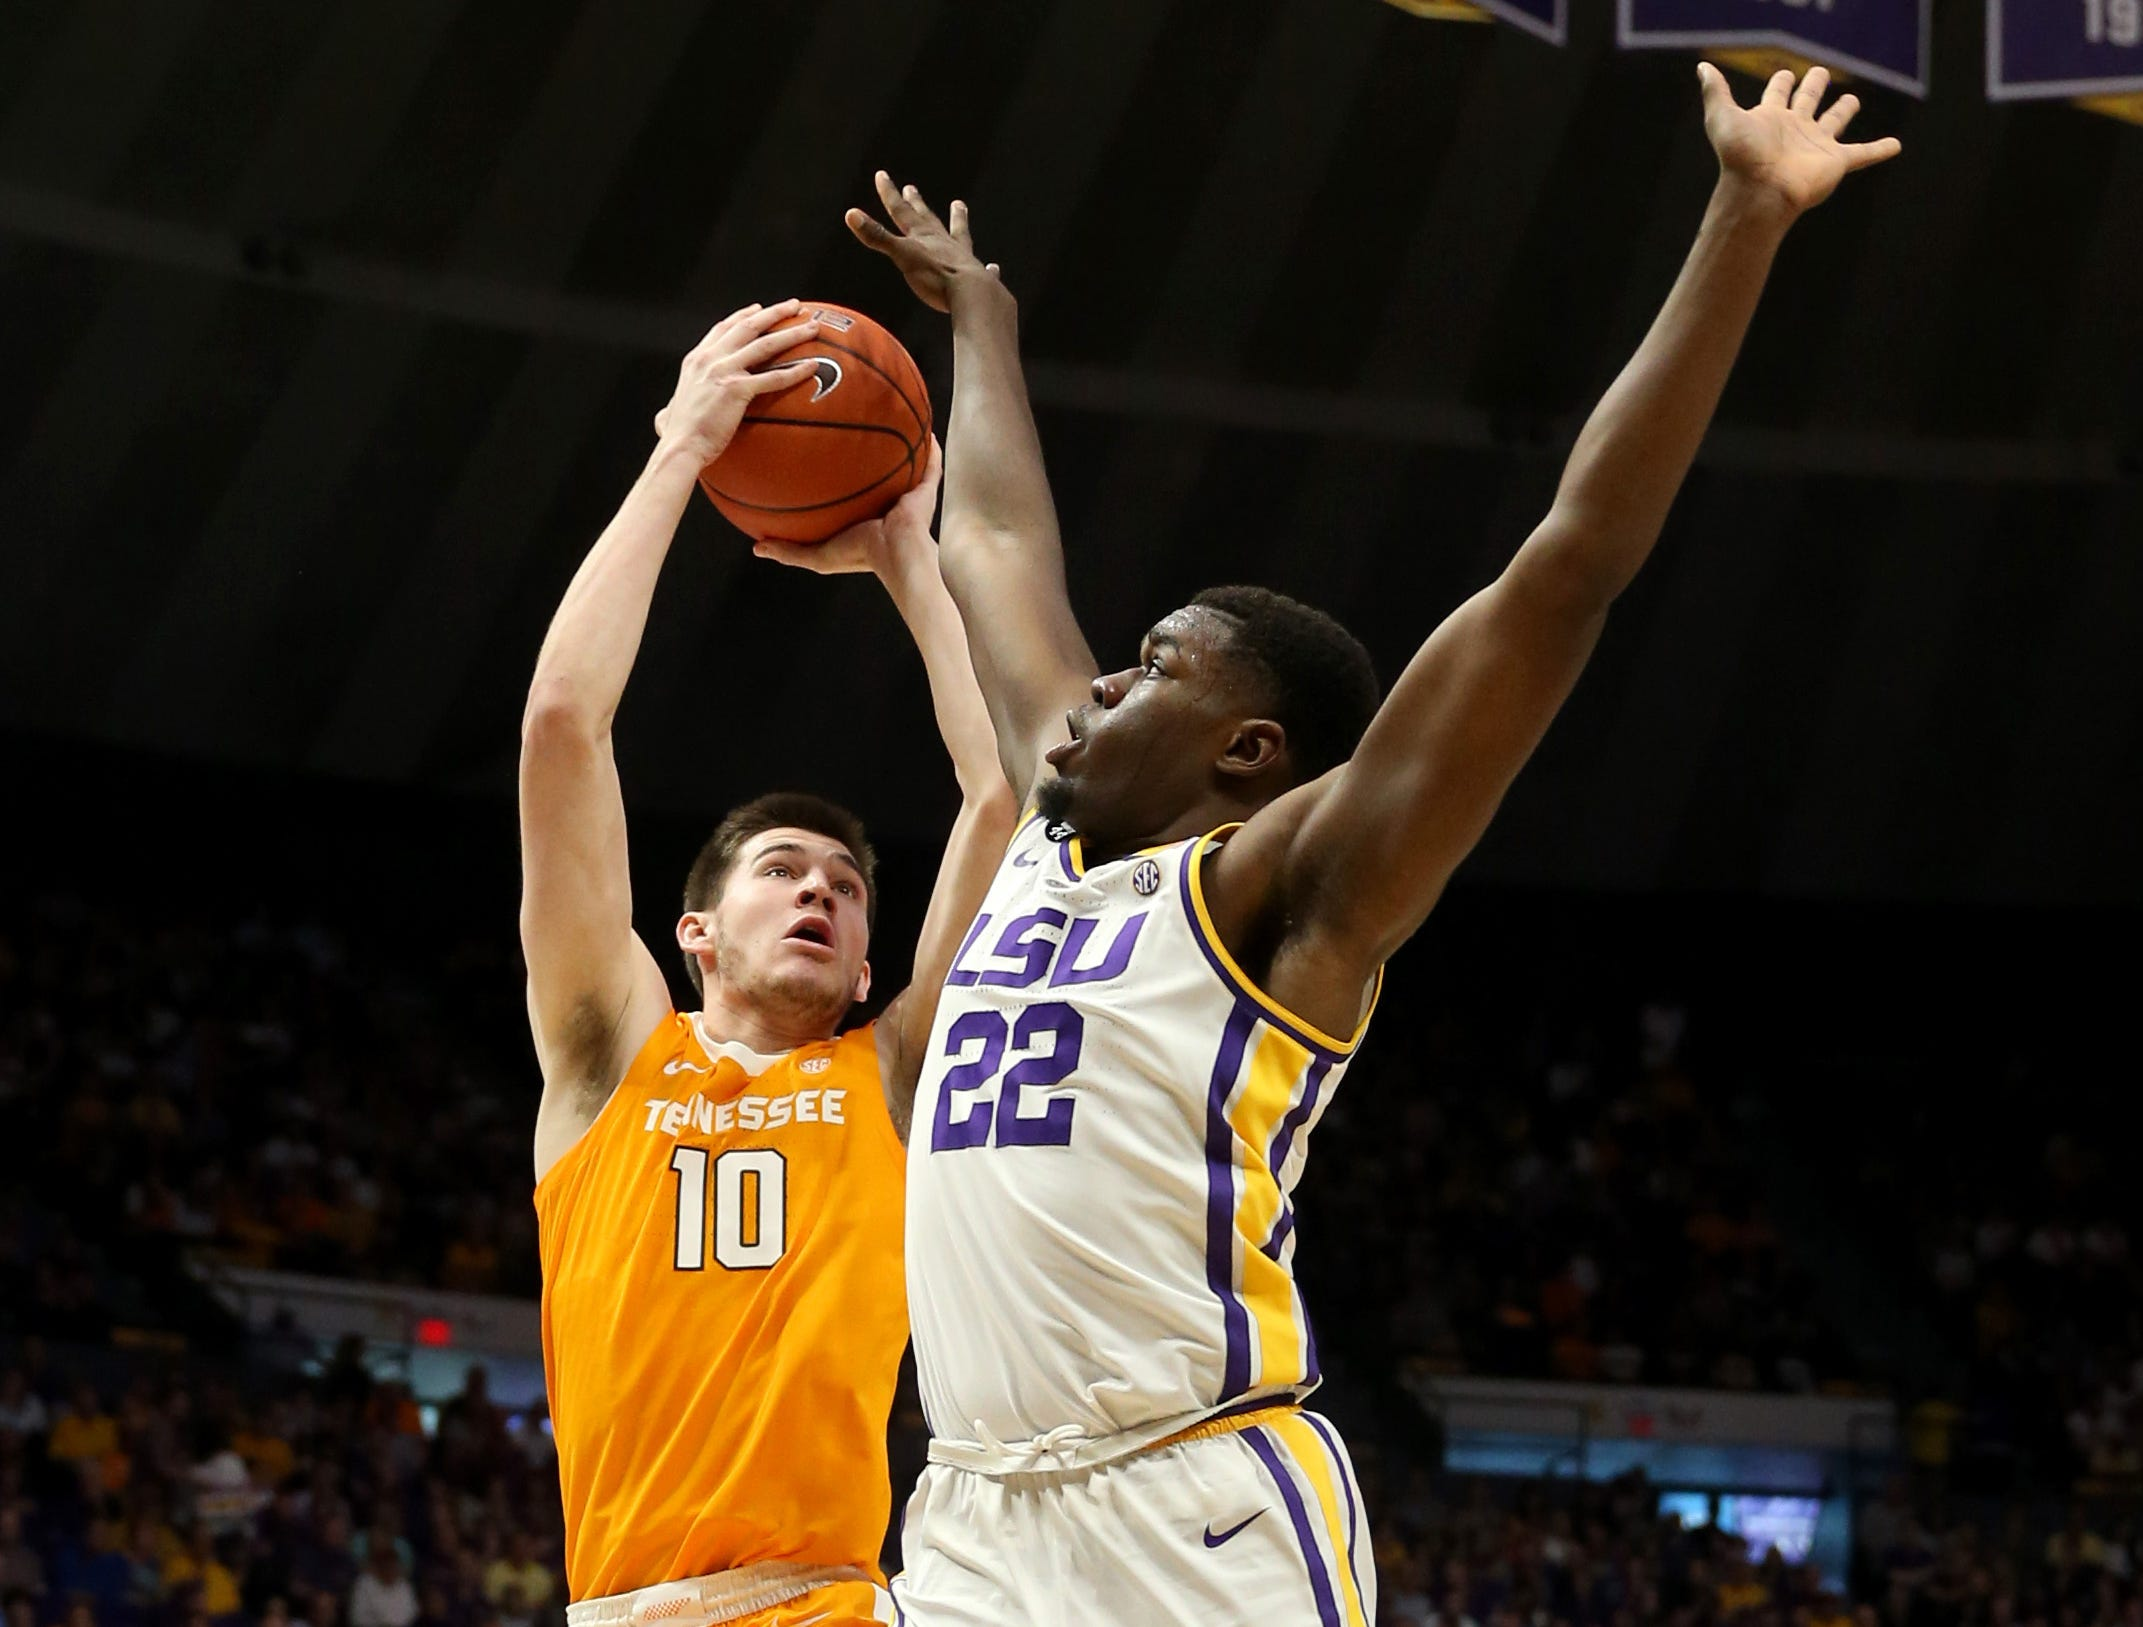 Feb 23, 2019; Baton Rouge, LA, USA; The shot by Tennessee Volunteers forward John Fulkerson (10) is defended by LSU Tigers forward Darius Days (22) in the first half at the Maravich Assembly Center. Mandatory Credit: Chuck Cook-USA TODAY Sports